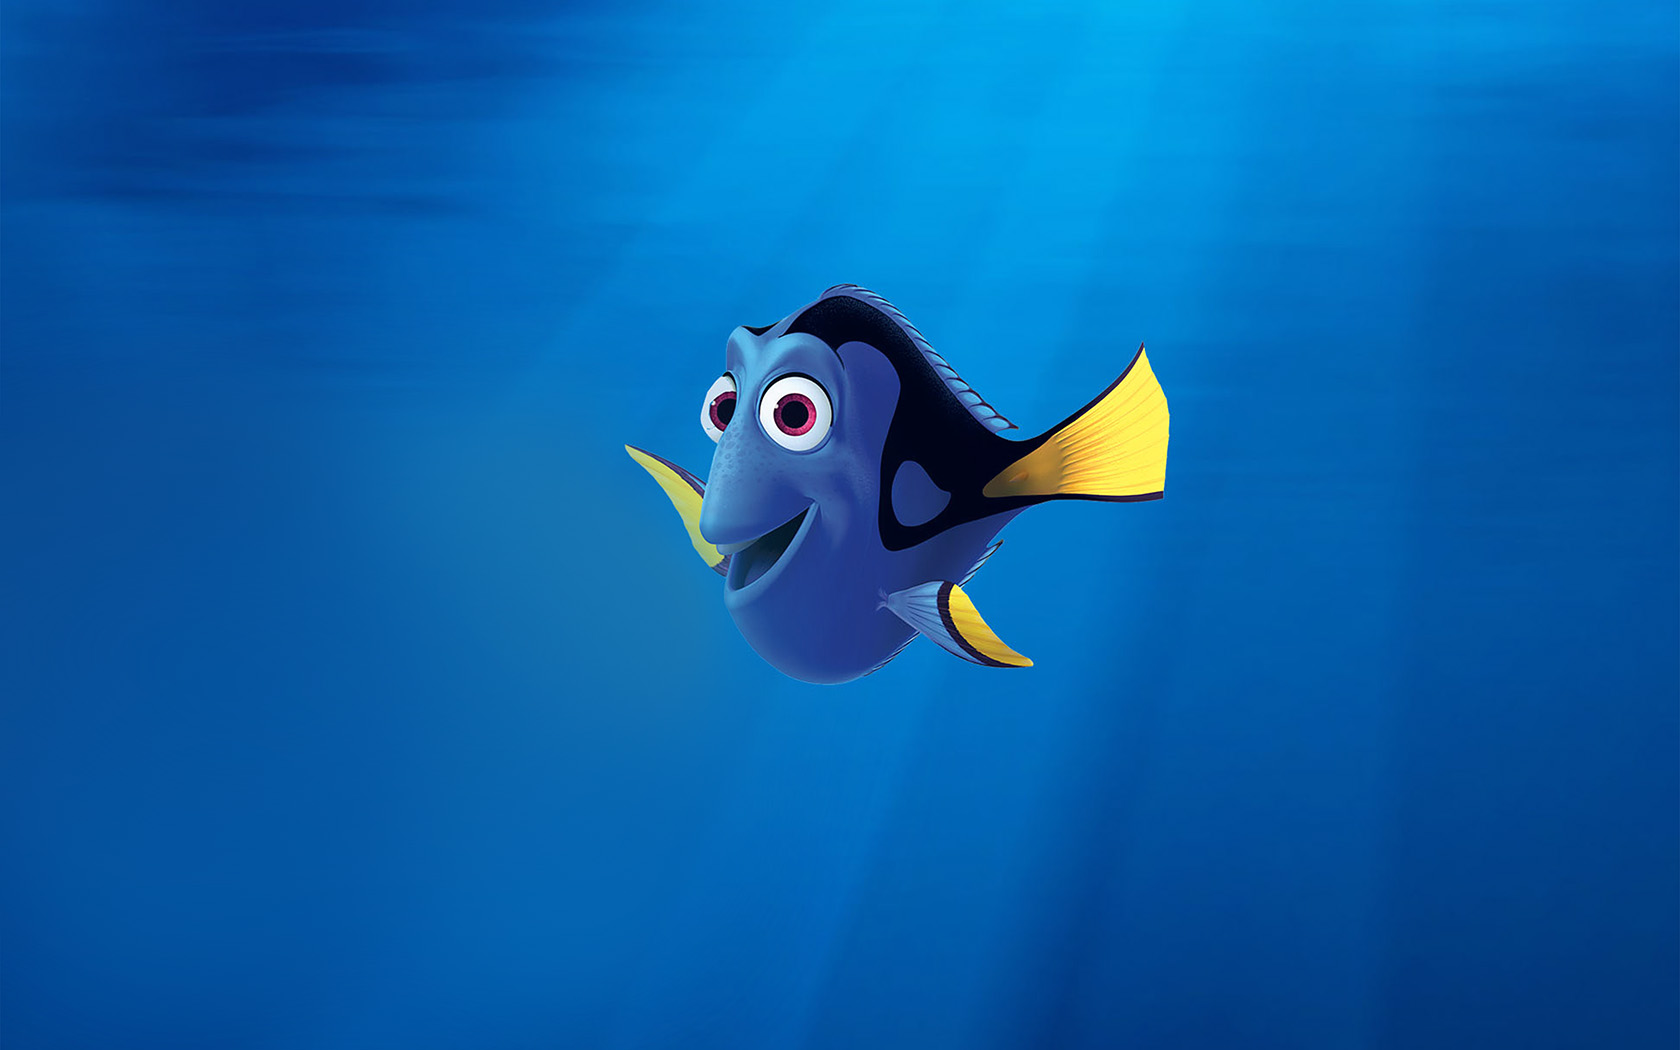 Free Fall Disney Wallpaper Aq99 Finding Nemo Dory Disney Art Wallpaper